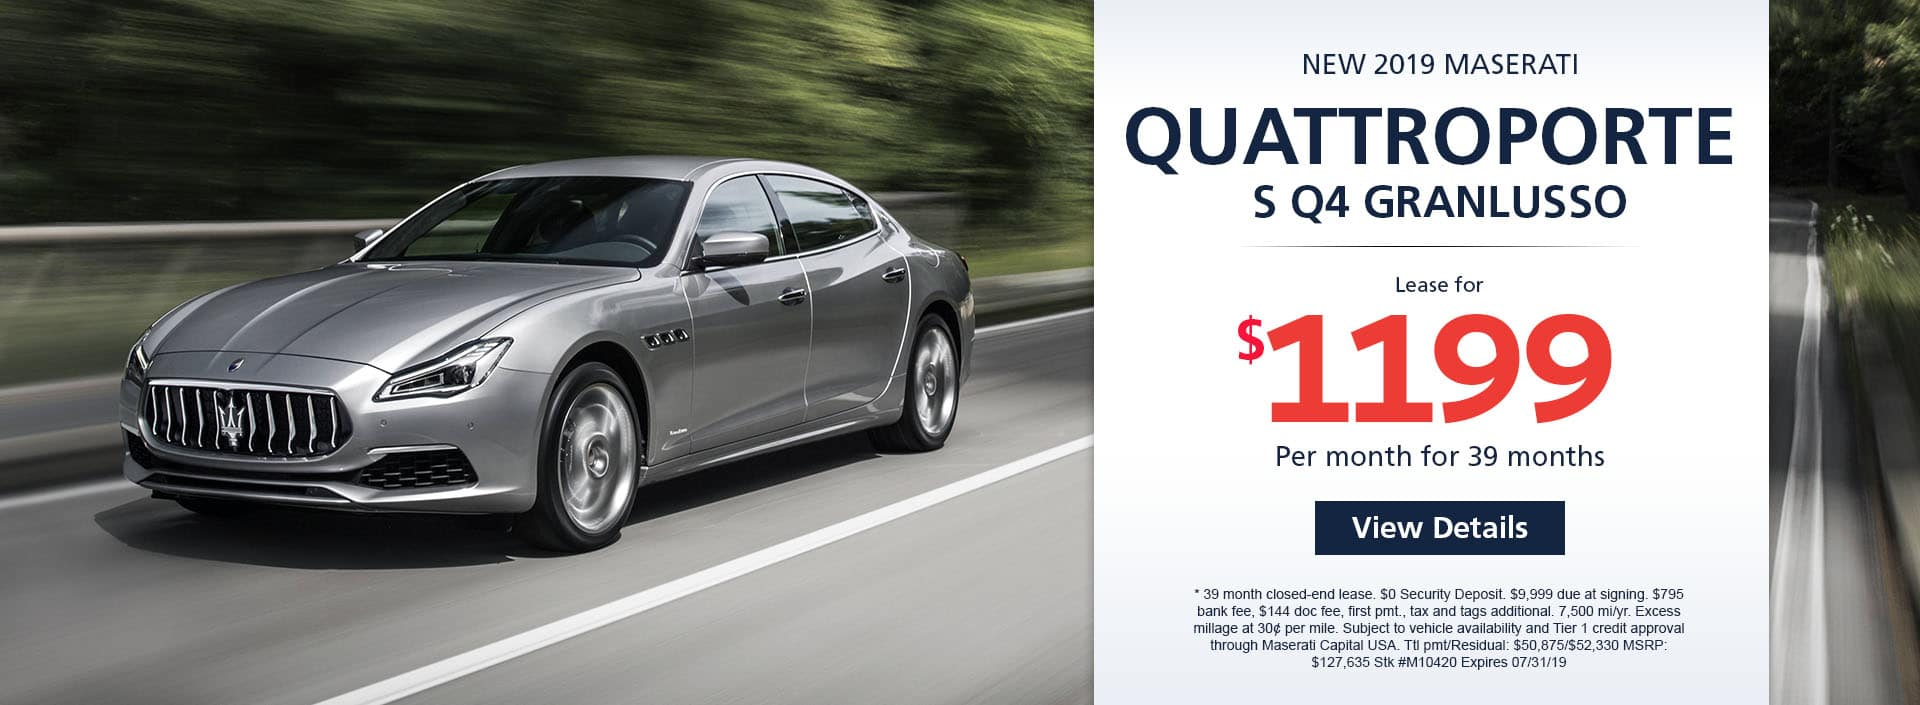 Lease a new 2019 MASERATI QUATTROPORTE SQ4 GRANLUSSO for $1,199 a month for 39 months.